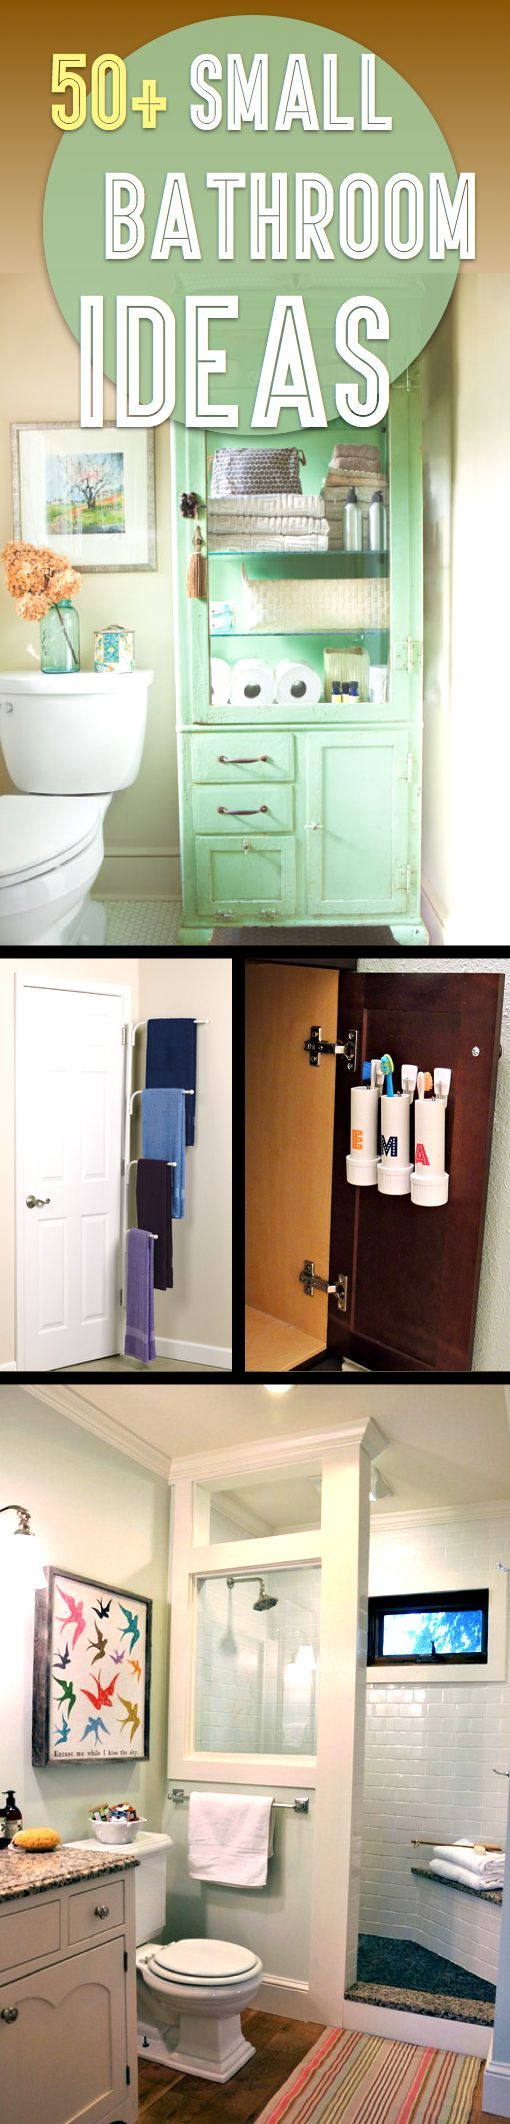 50 Small Bathroom Ideas That You Can Use To Maximize The Available Storage Space If You Have